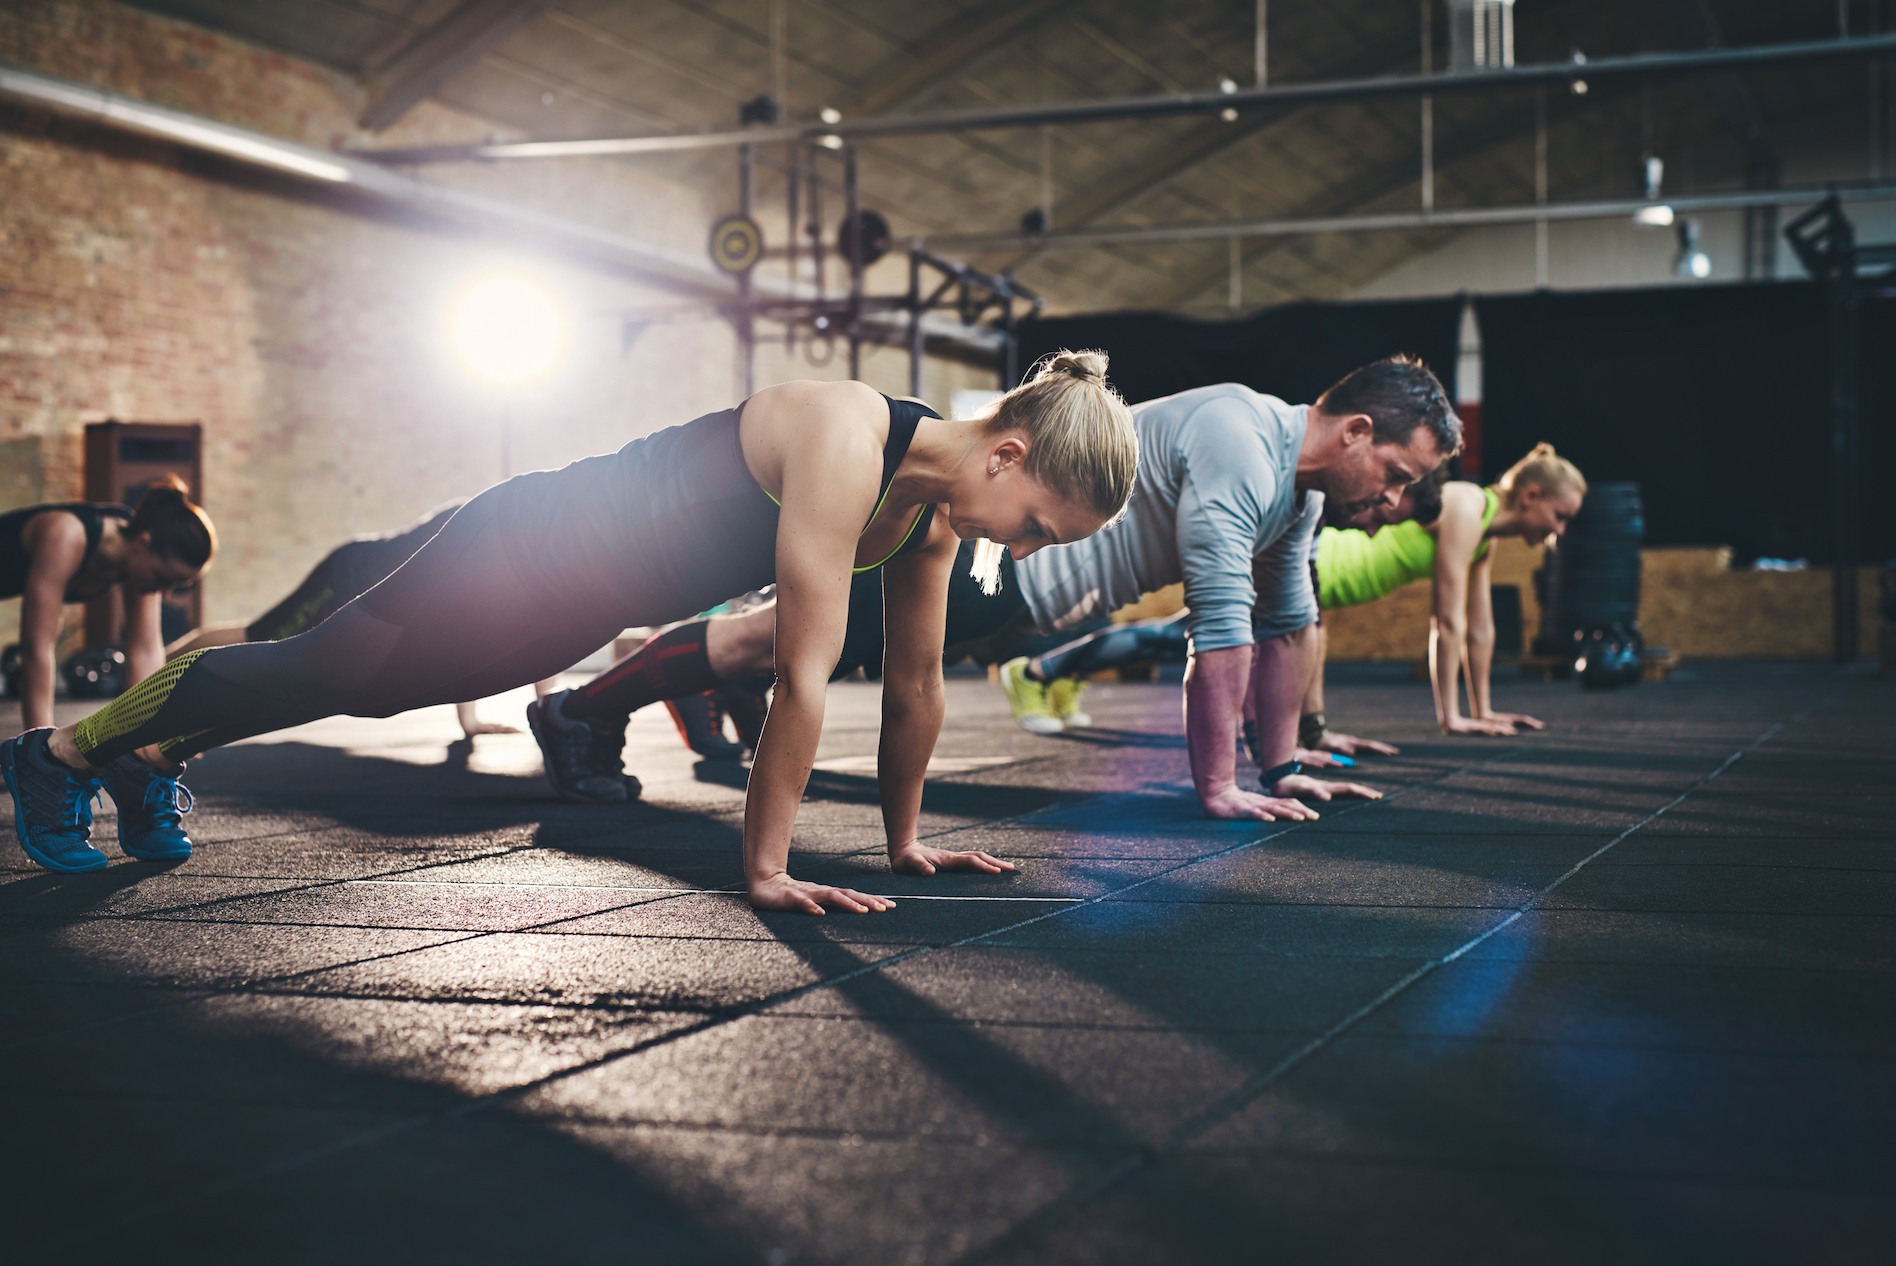 A new study found that people are largely unaware of the increased risk of cancer associated with lack of exercise.